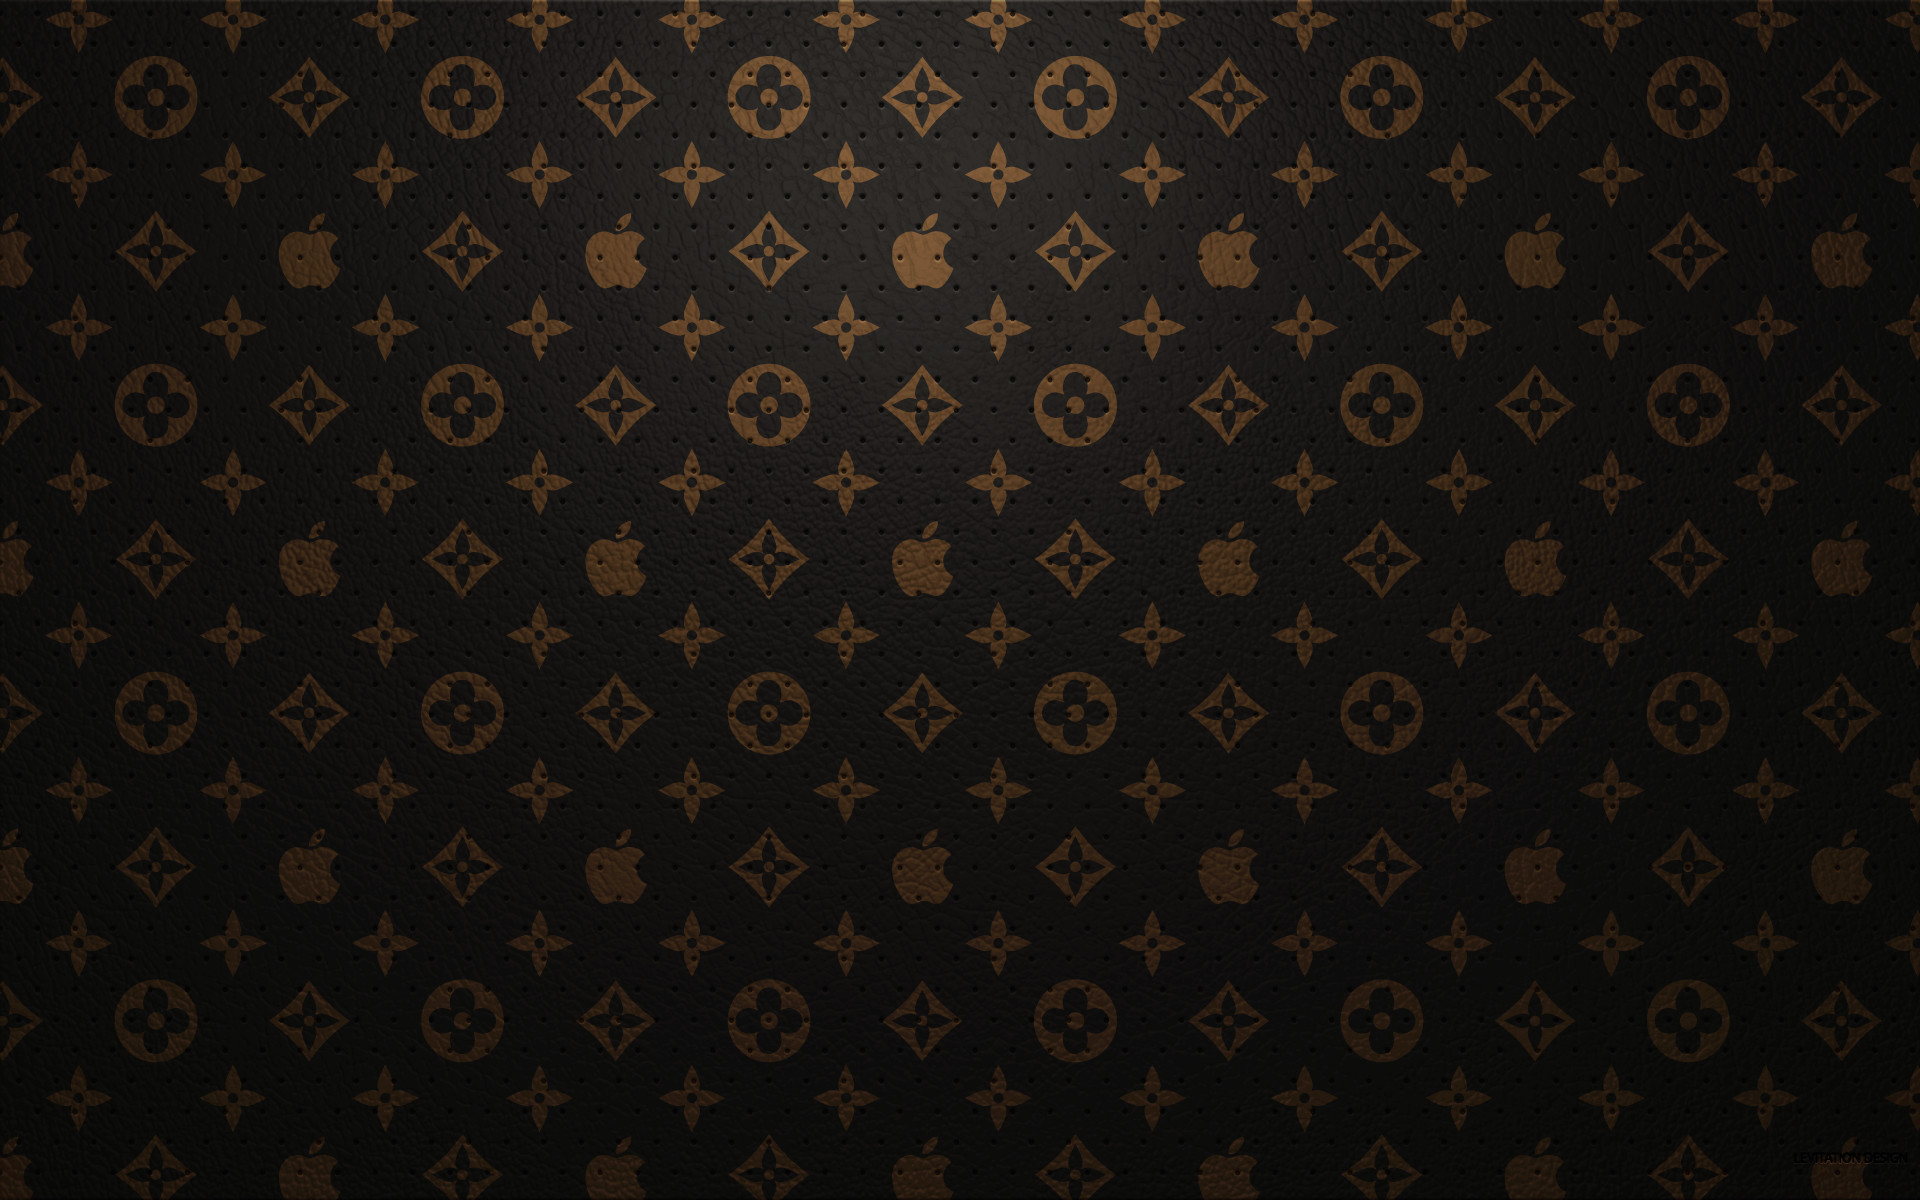 Popular Wallpaper Macbook Louis Vuitton - 935298-wallpaper-lv-1920x1200-for-ipad-pro  Pic_45618.jpg